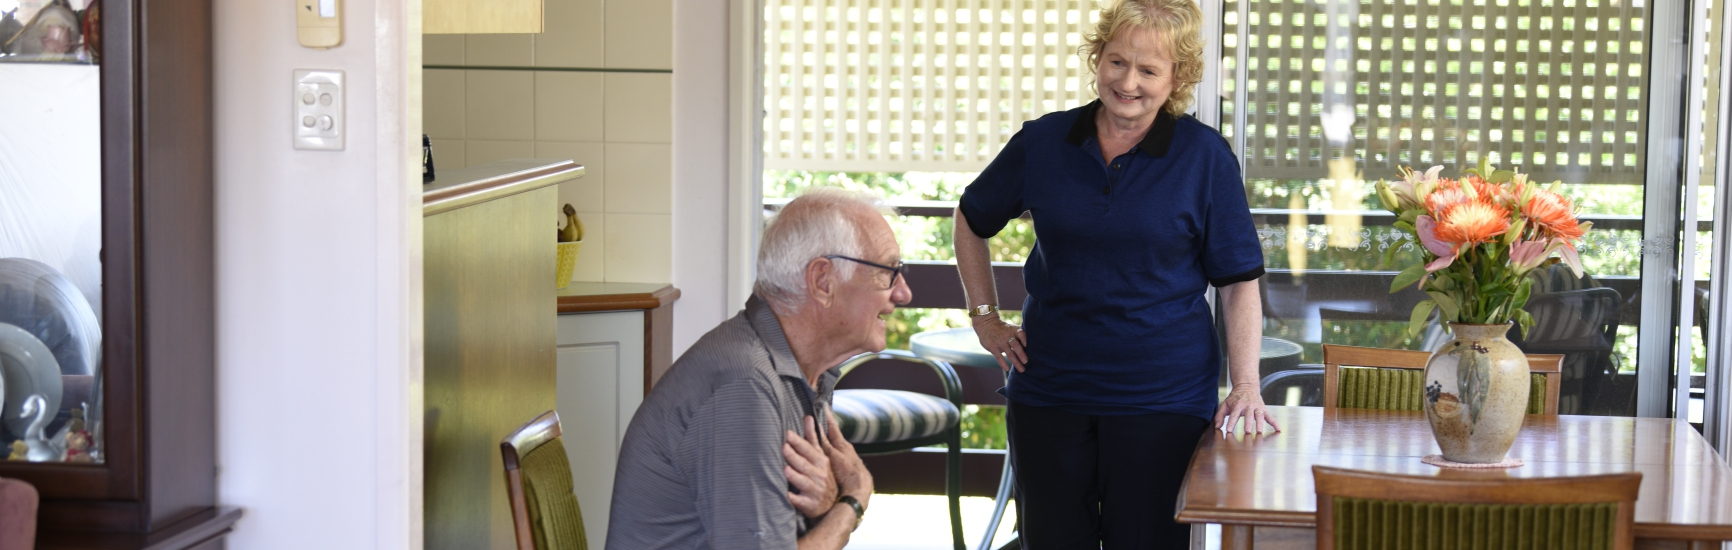 Senior assisted care Brisbane